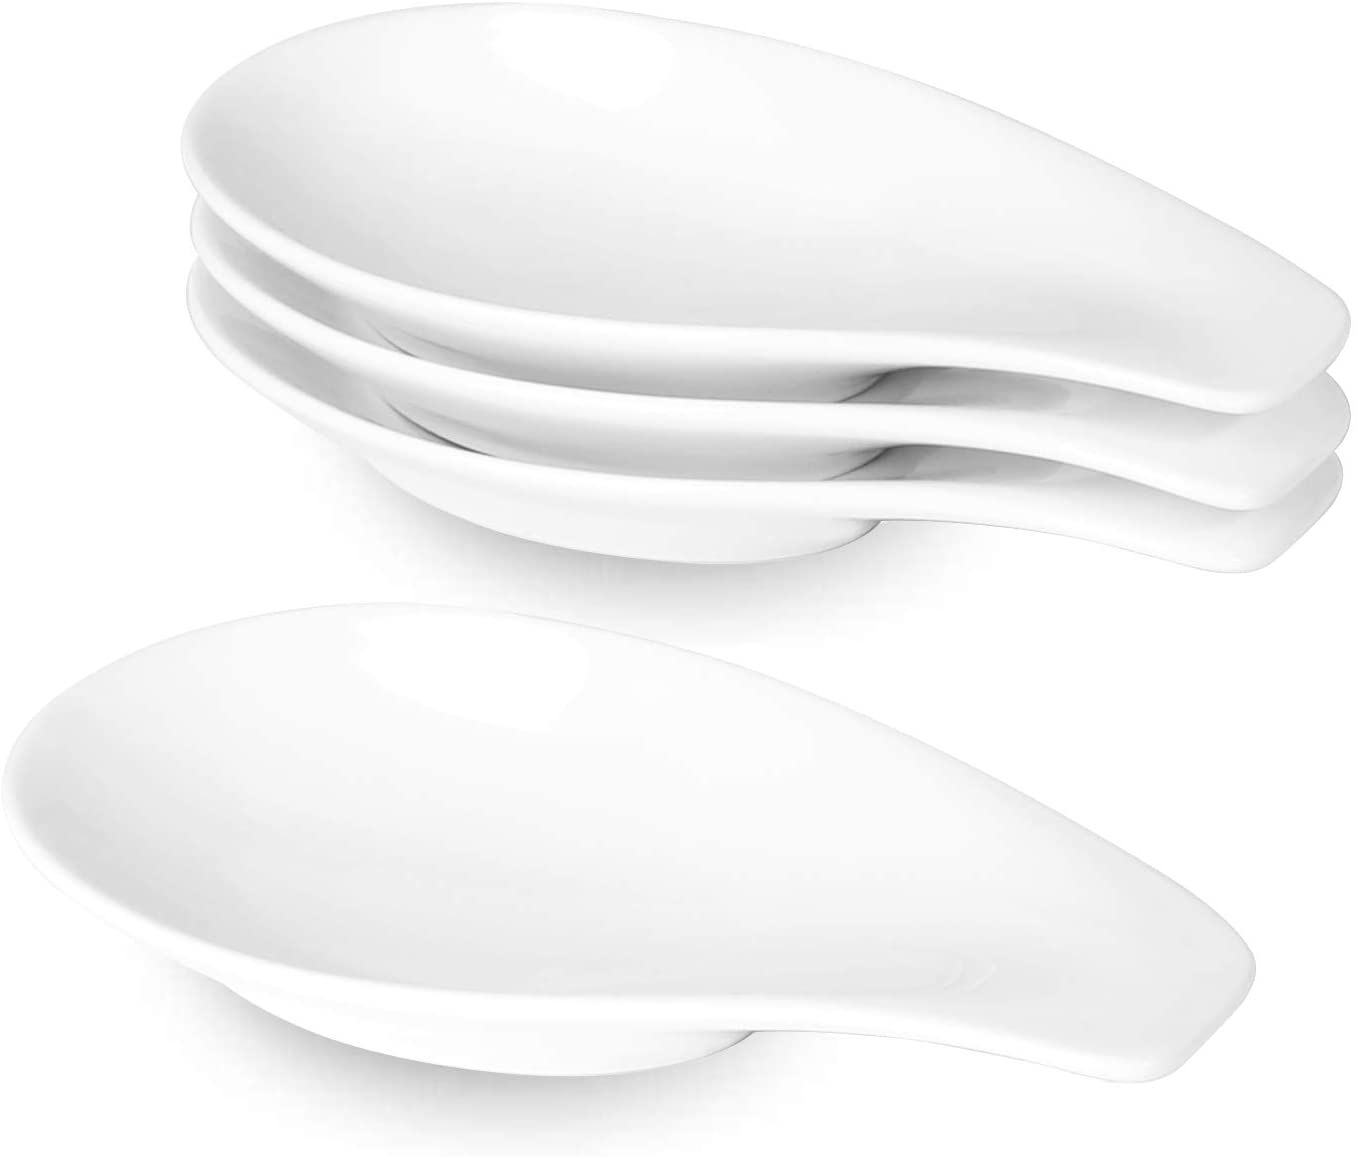 ONTUBE Ceramic Spoon Rests Set of 4, Porcelain Sauce Dish Resting Cooking Spoons Holder Ceramic Towel Plate, 6.5 Inch (White)